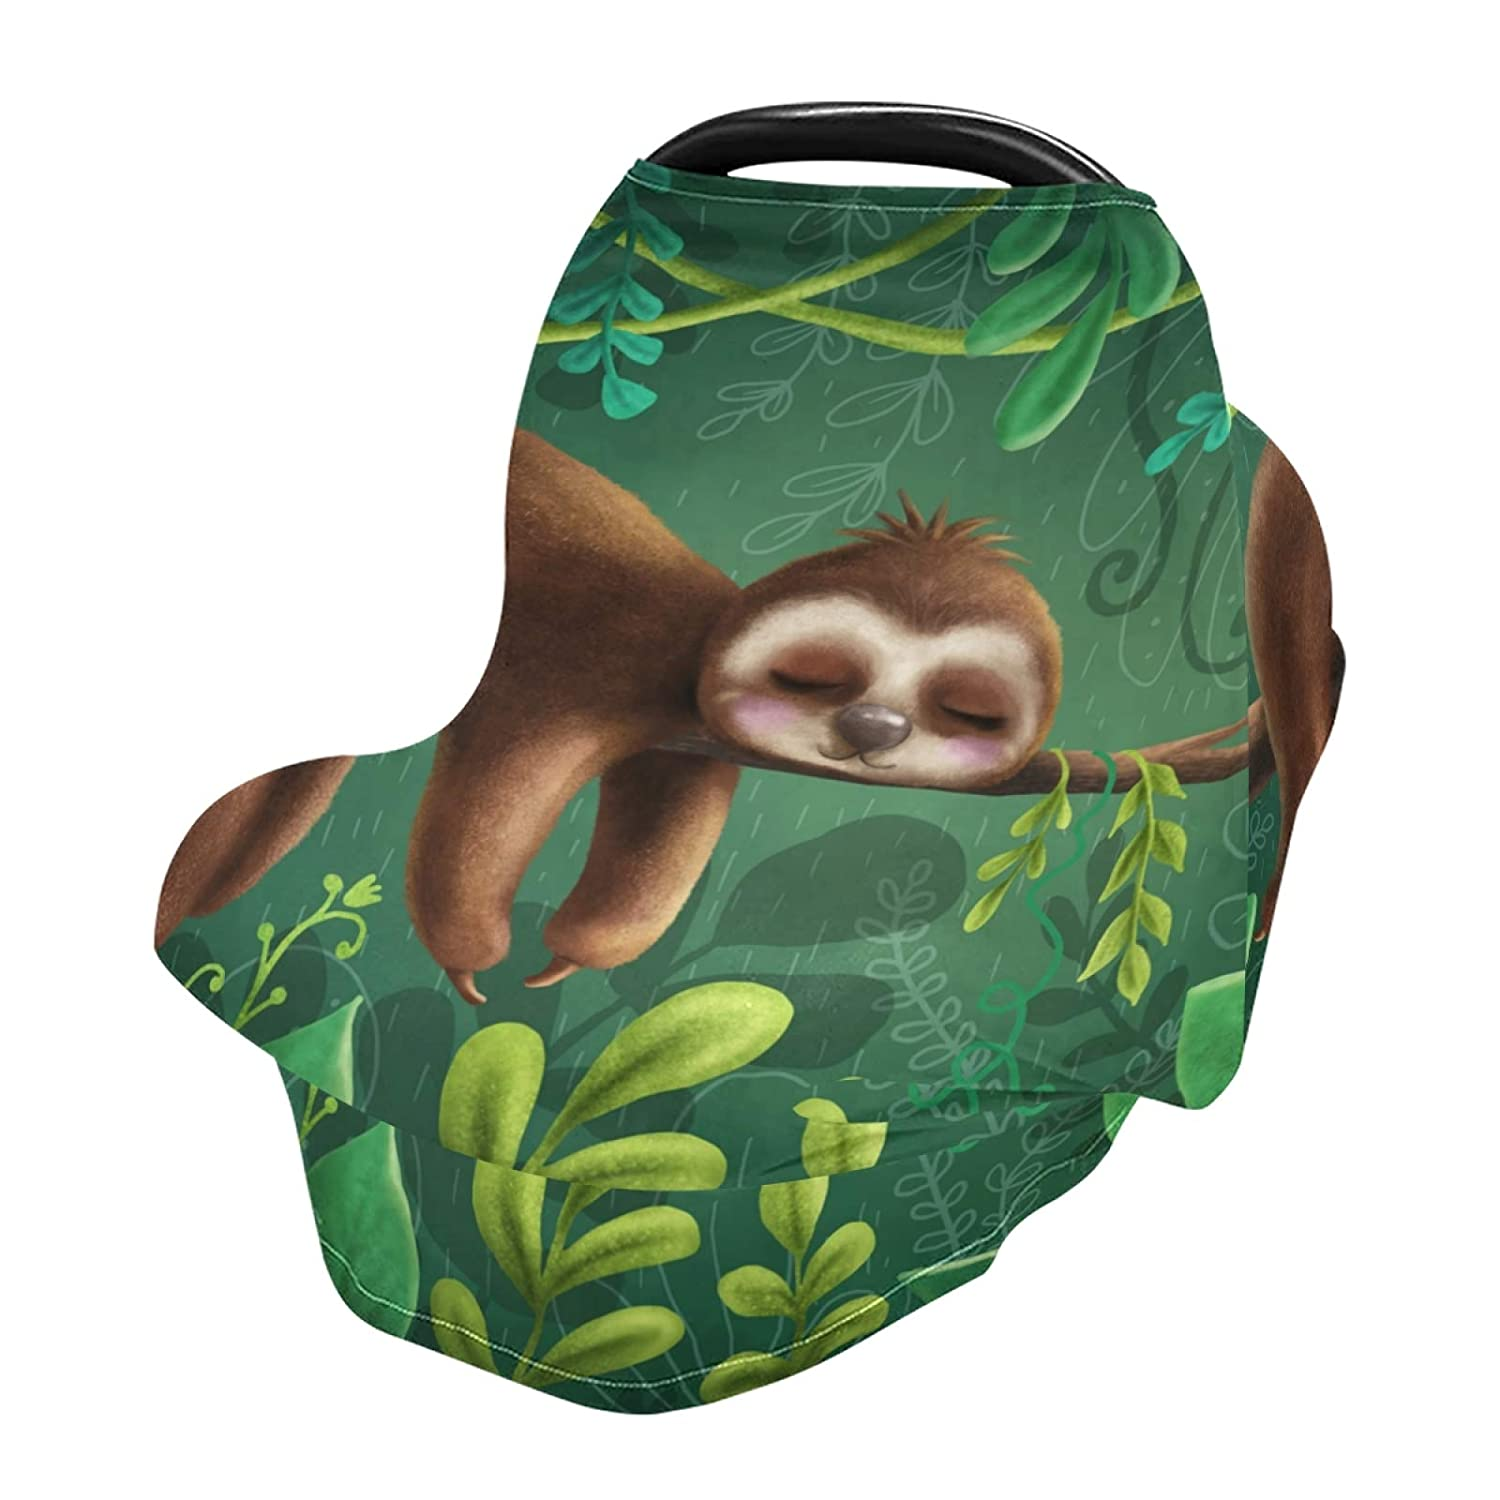 Baby Car Seat Covers Canopies for Boys Girls Cute Sloth Infant Stroller Cover Nursing Cover Breastfeeding Scarf Warm Windproof